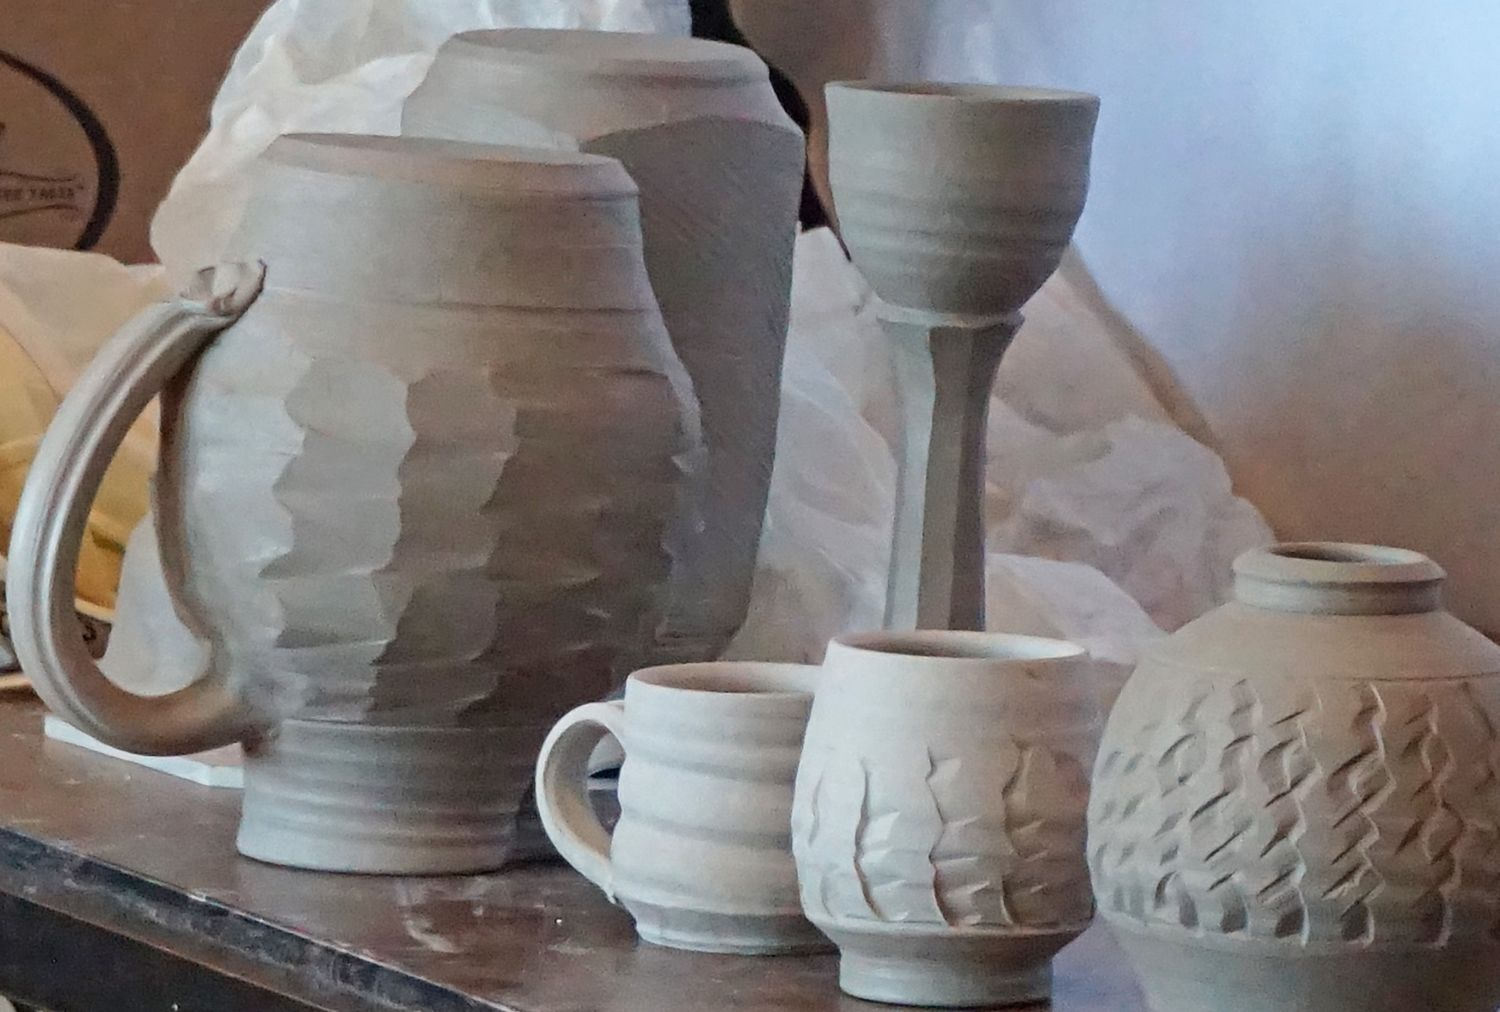 Functional Clay 2016 - Cynthia Bringle's carved work